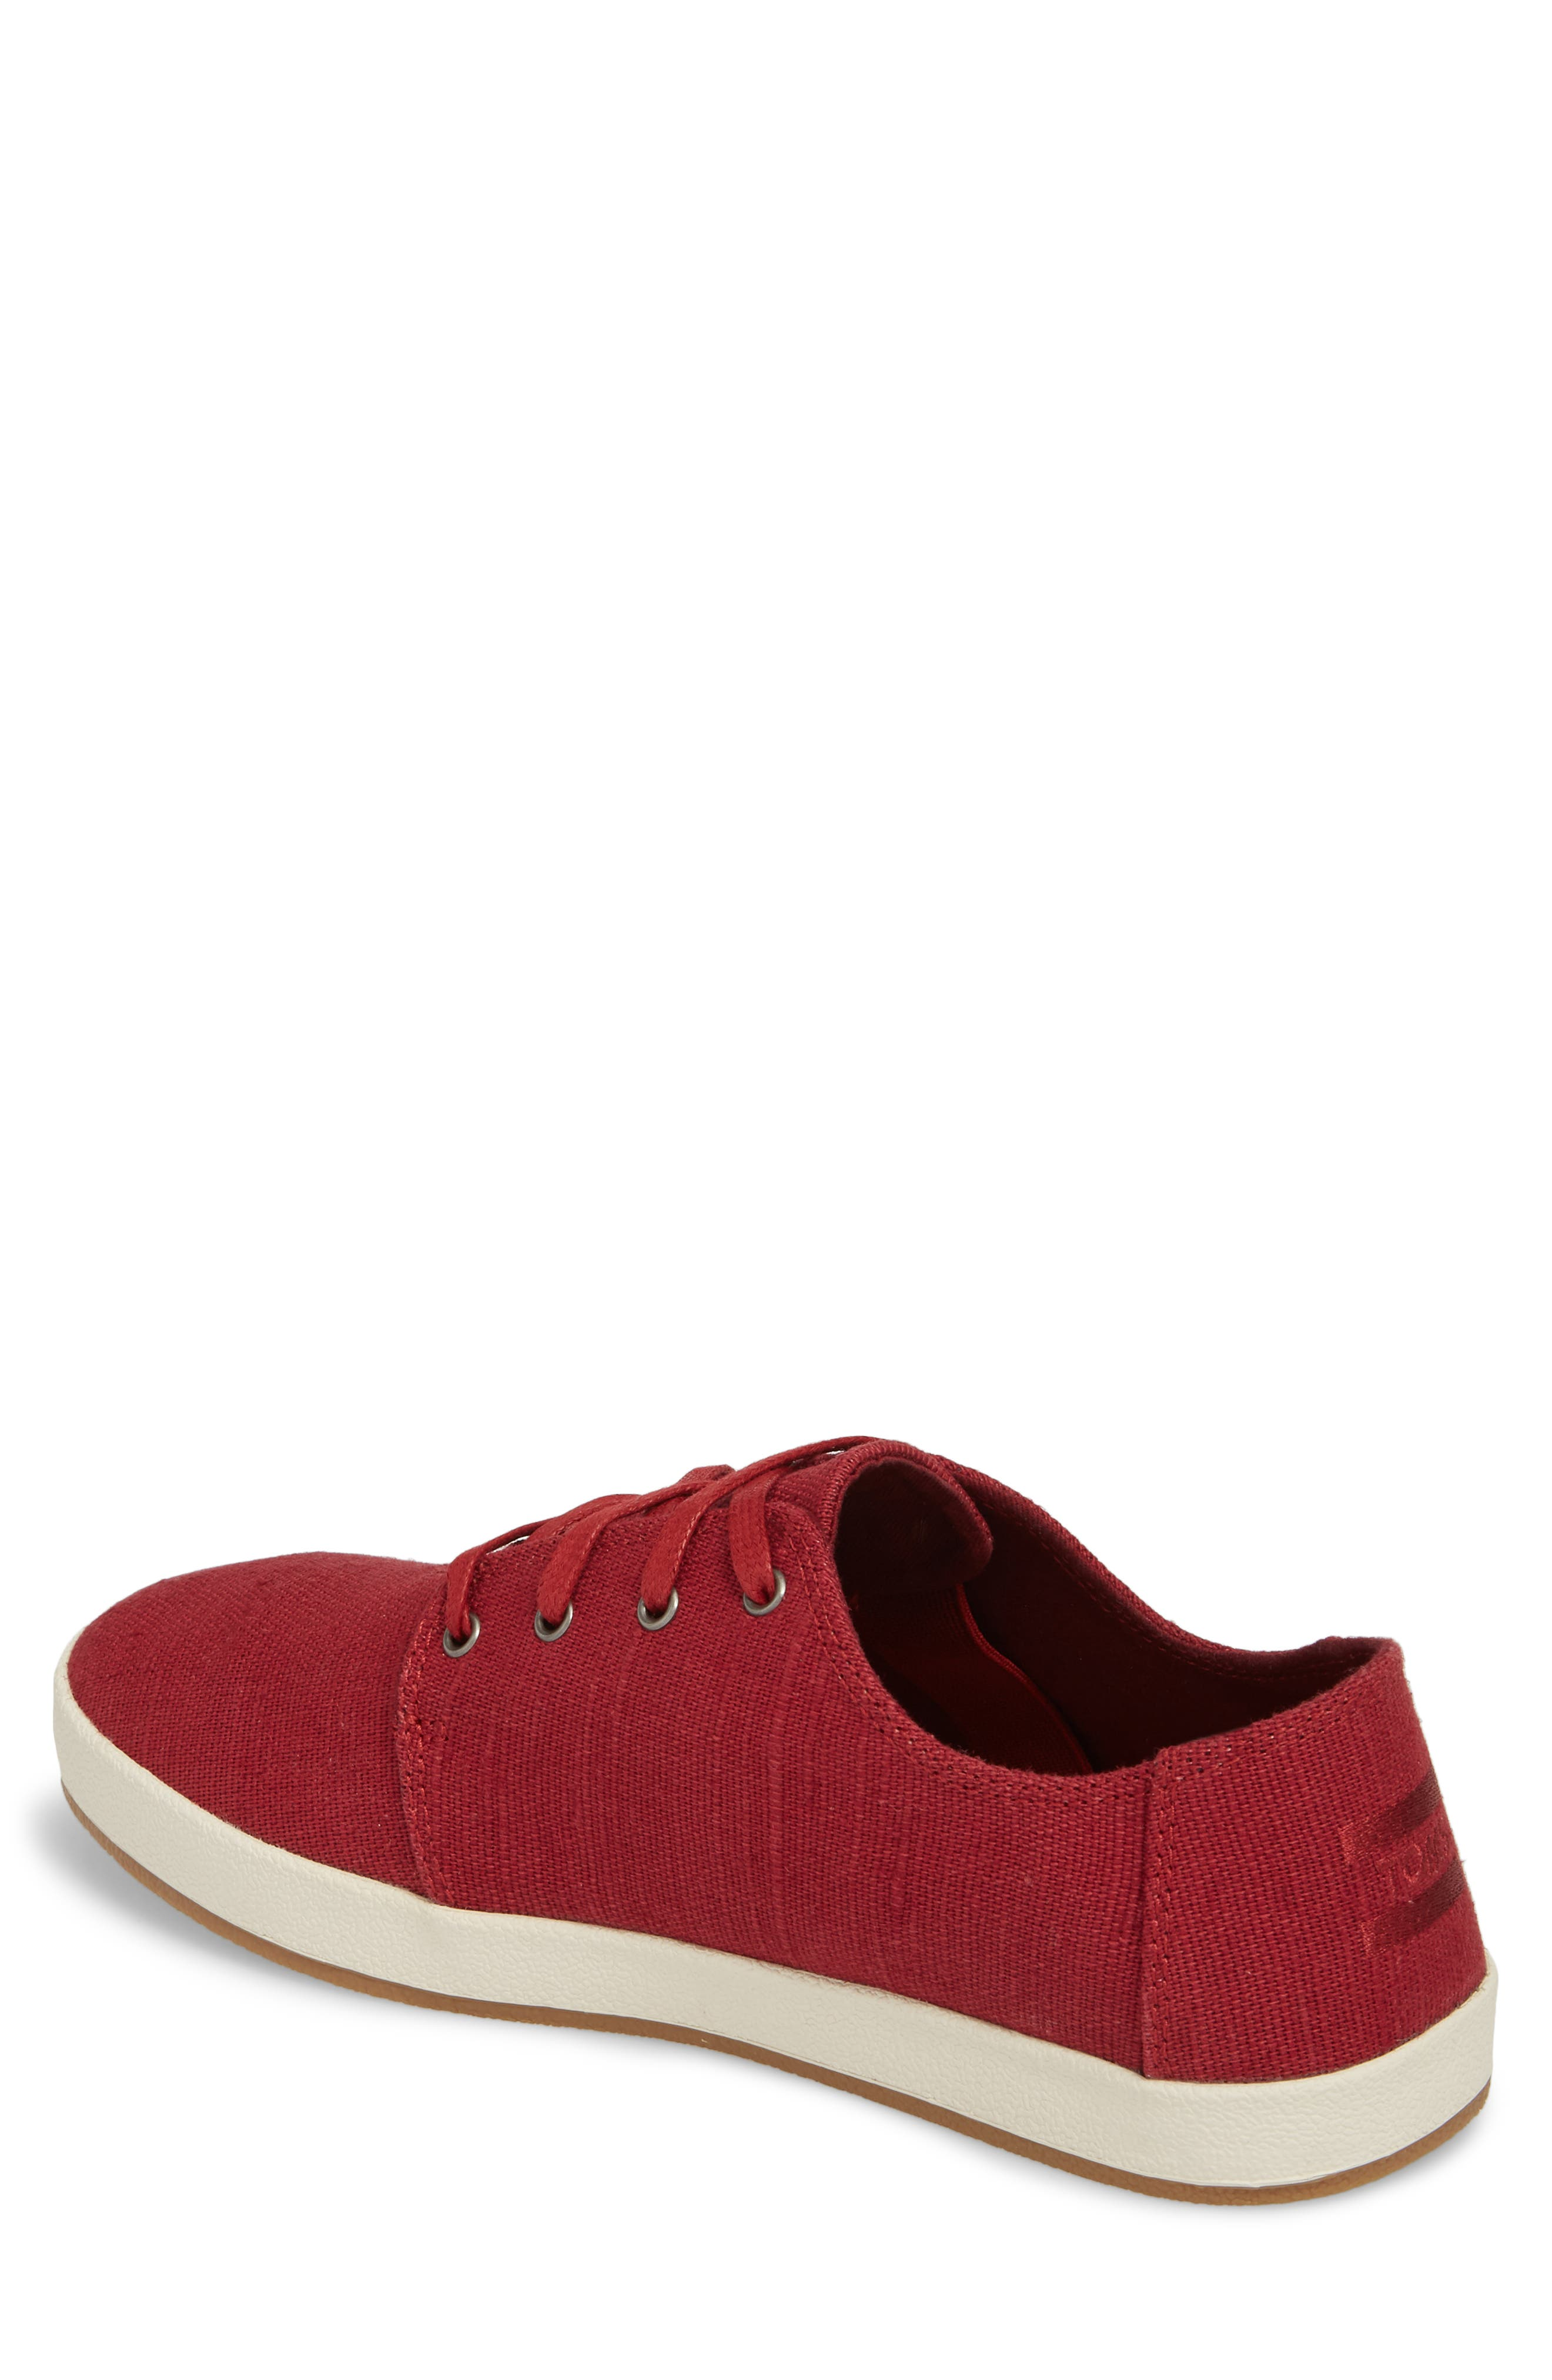 Payton Sneaker,                             Alternate thumbnail 2, color,                             Henna Red Heritage Canvas